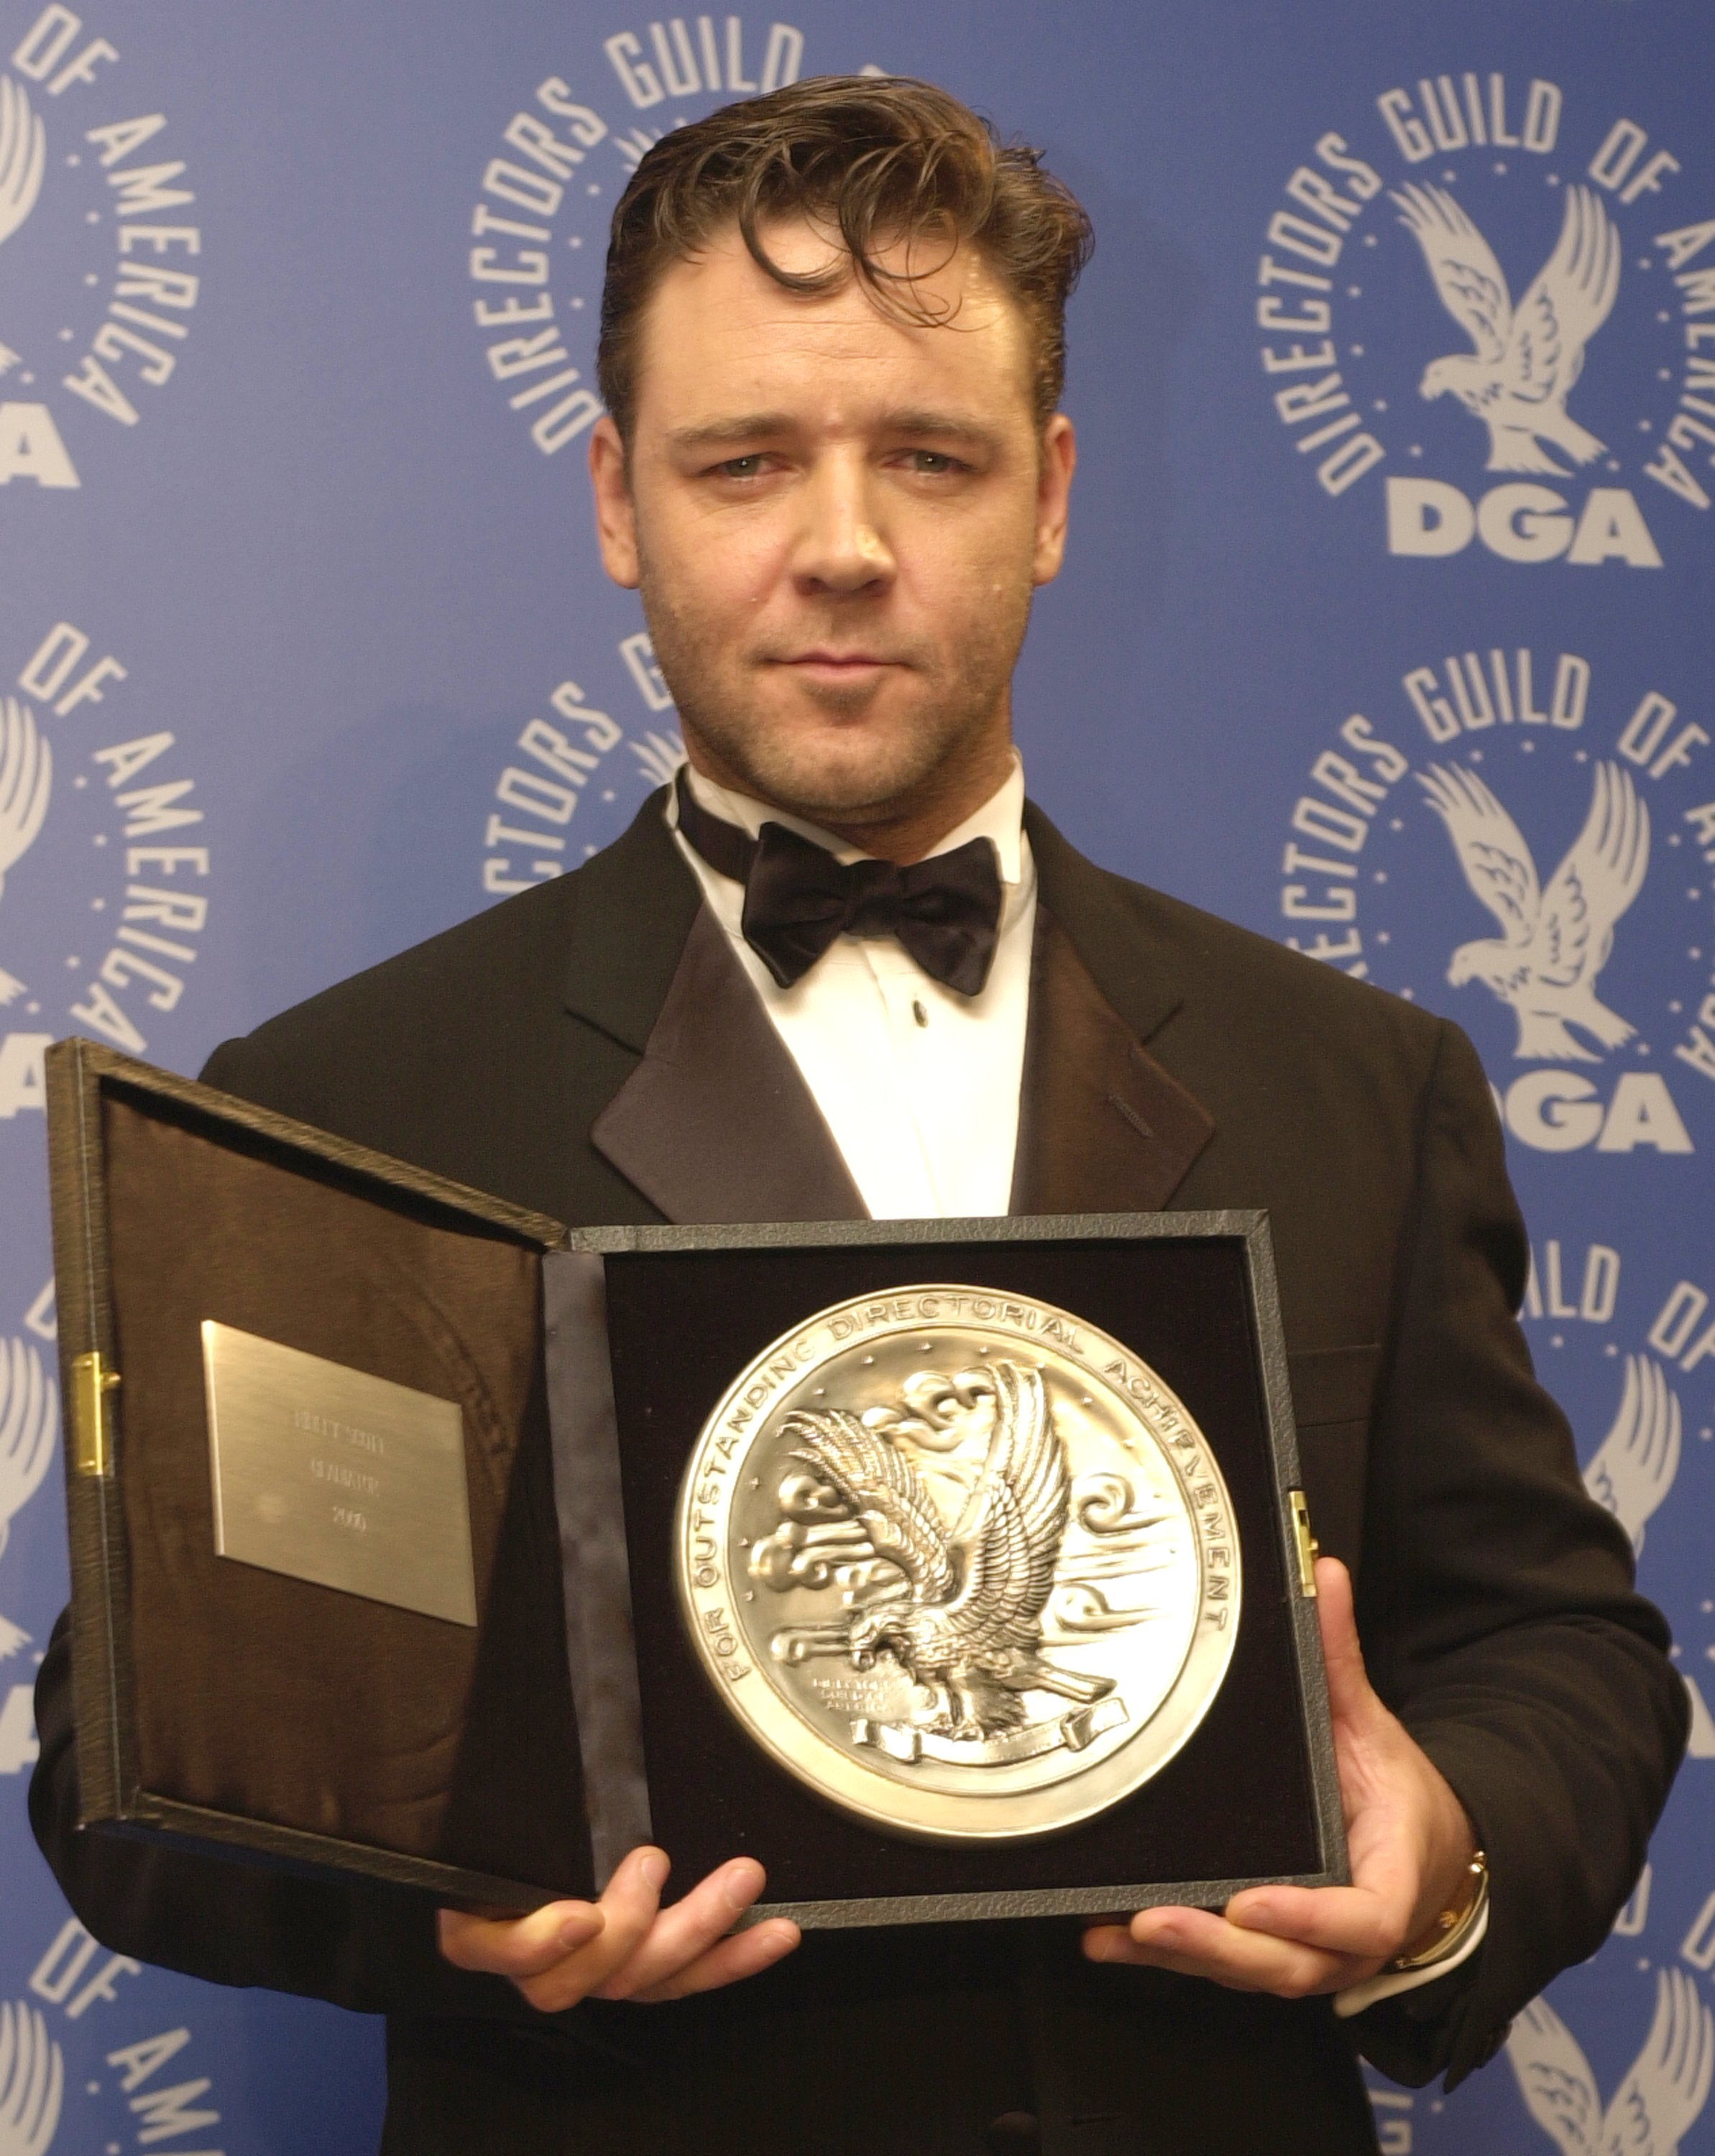 Actor Russell Crowe, accepting the nominee's plate for Outstanding Directorial Achievement in Feature Film on behalf of director Ridley Scott and his film 'Gladiator', poses for photographers at the 53rd Annual Directors Guild of America Awards March 10, 2001, at the Century Plaza Hotel in Century City, CA. (Getty Images)